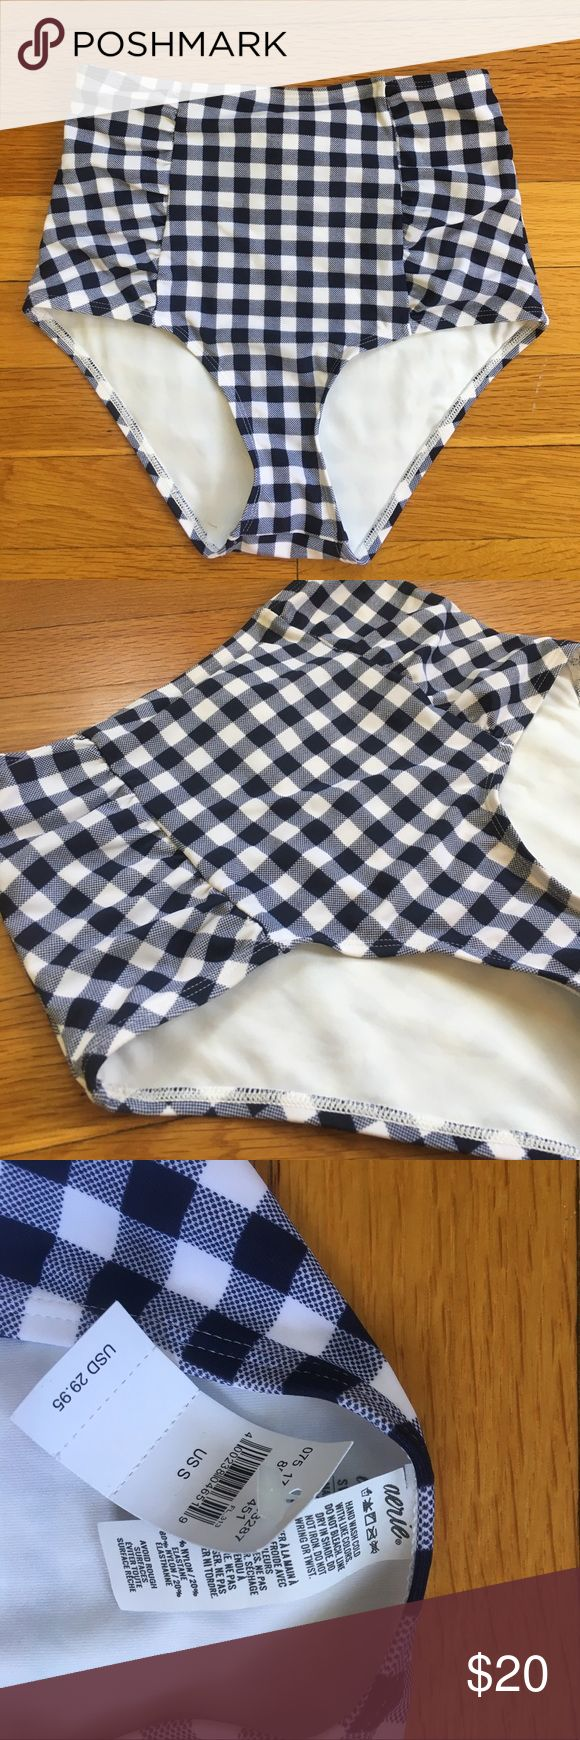 Aerie High-Rise Swim Bottoms New with tags navy blue and white gingham check pattern bikini bottoms. Vintage high-waisted cut and flattering ruched sides. Excellent condition. aerie Swim Bikinis